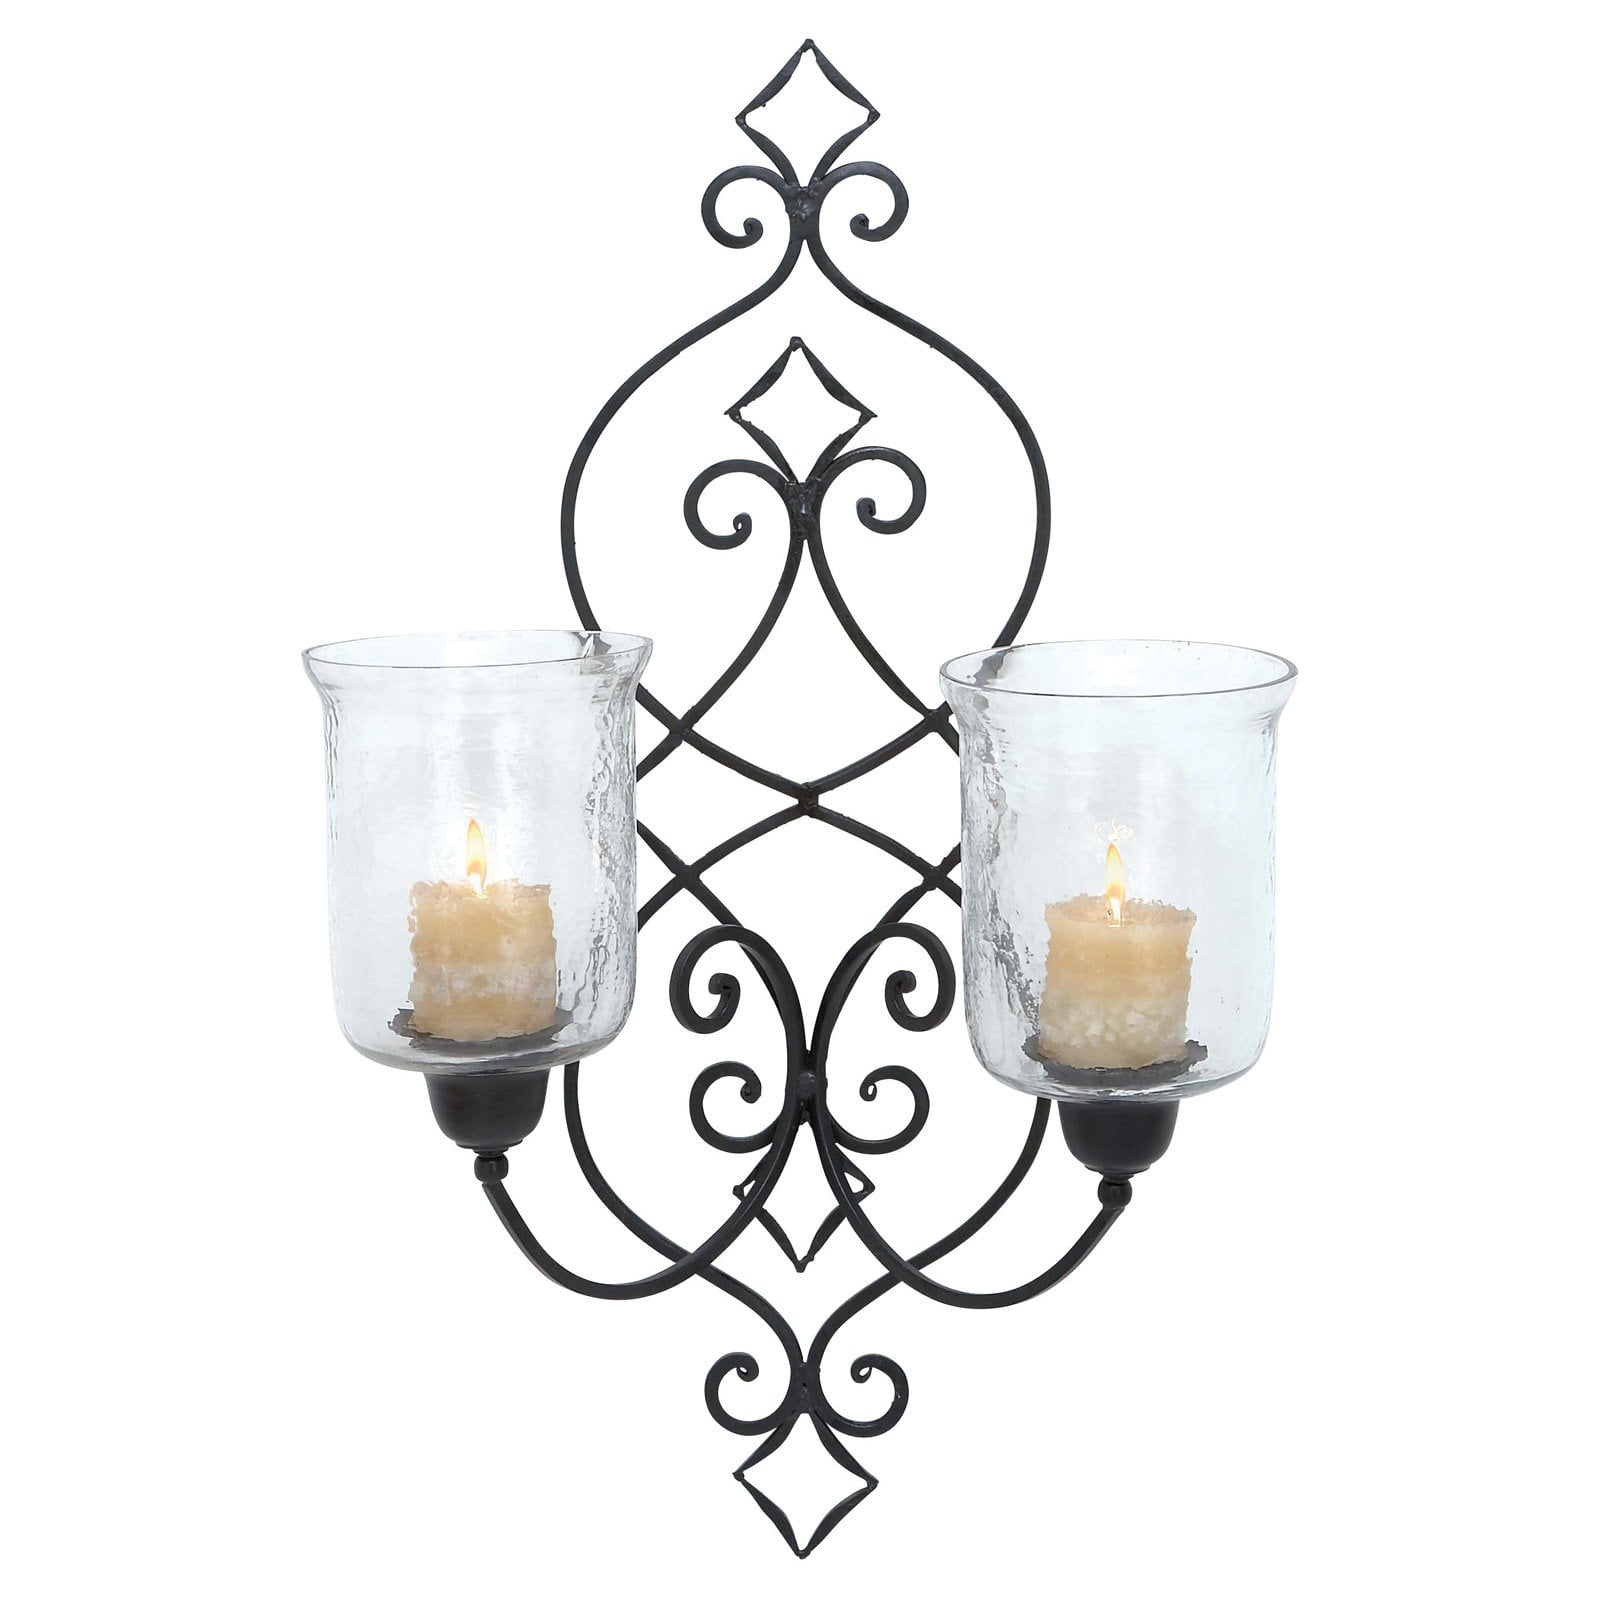 DecMode 31 in. Glass Wall Sconce Black by GwG Outlet